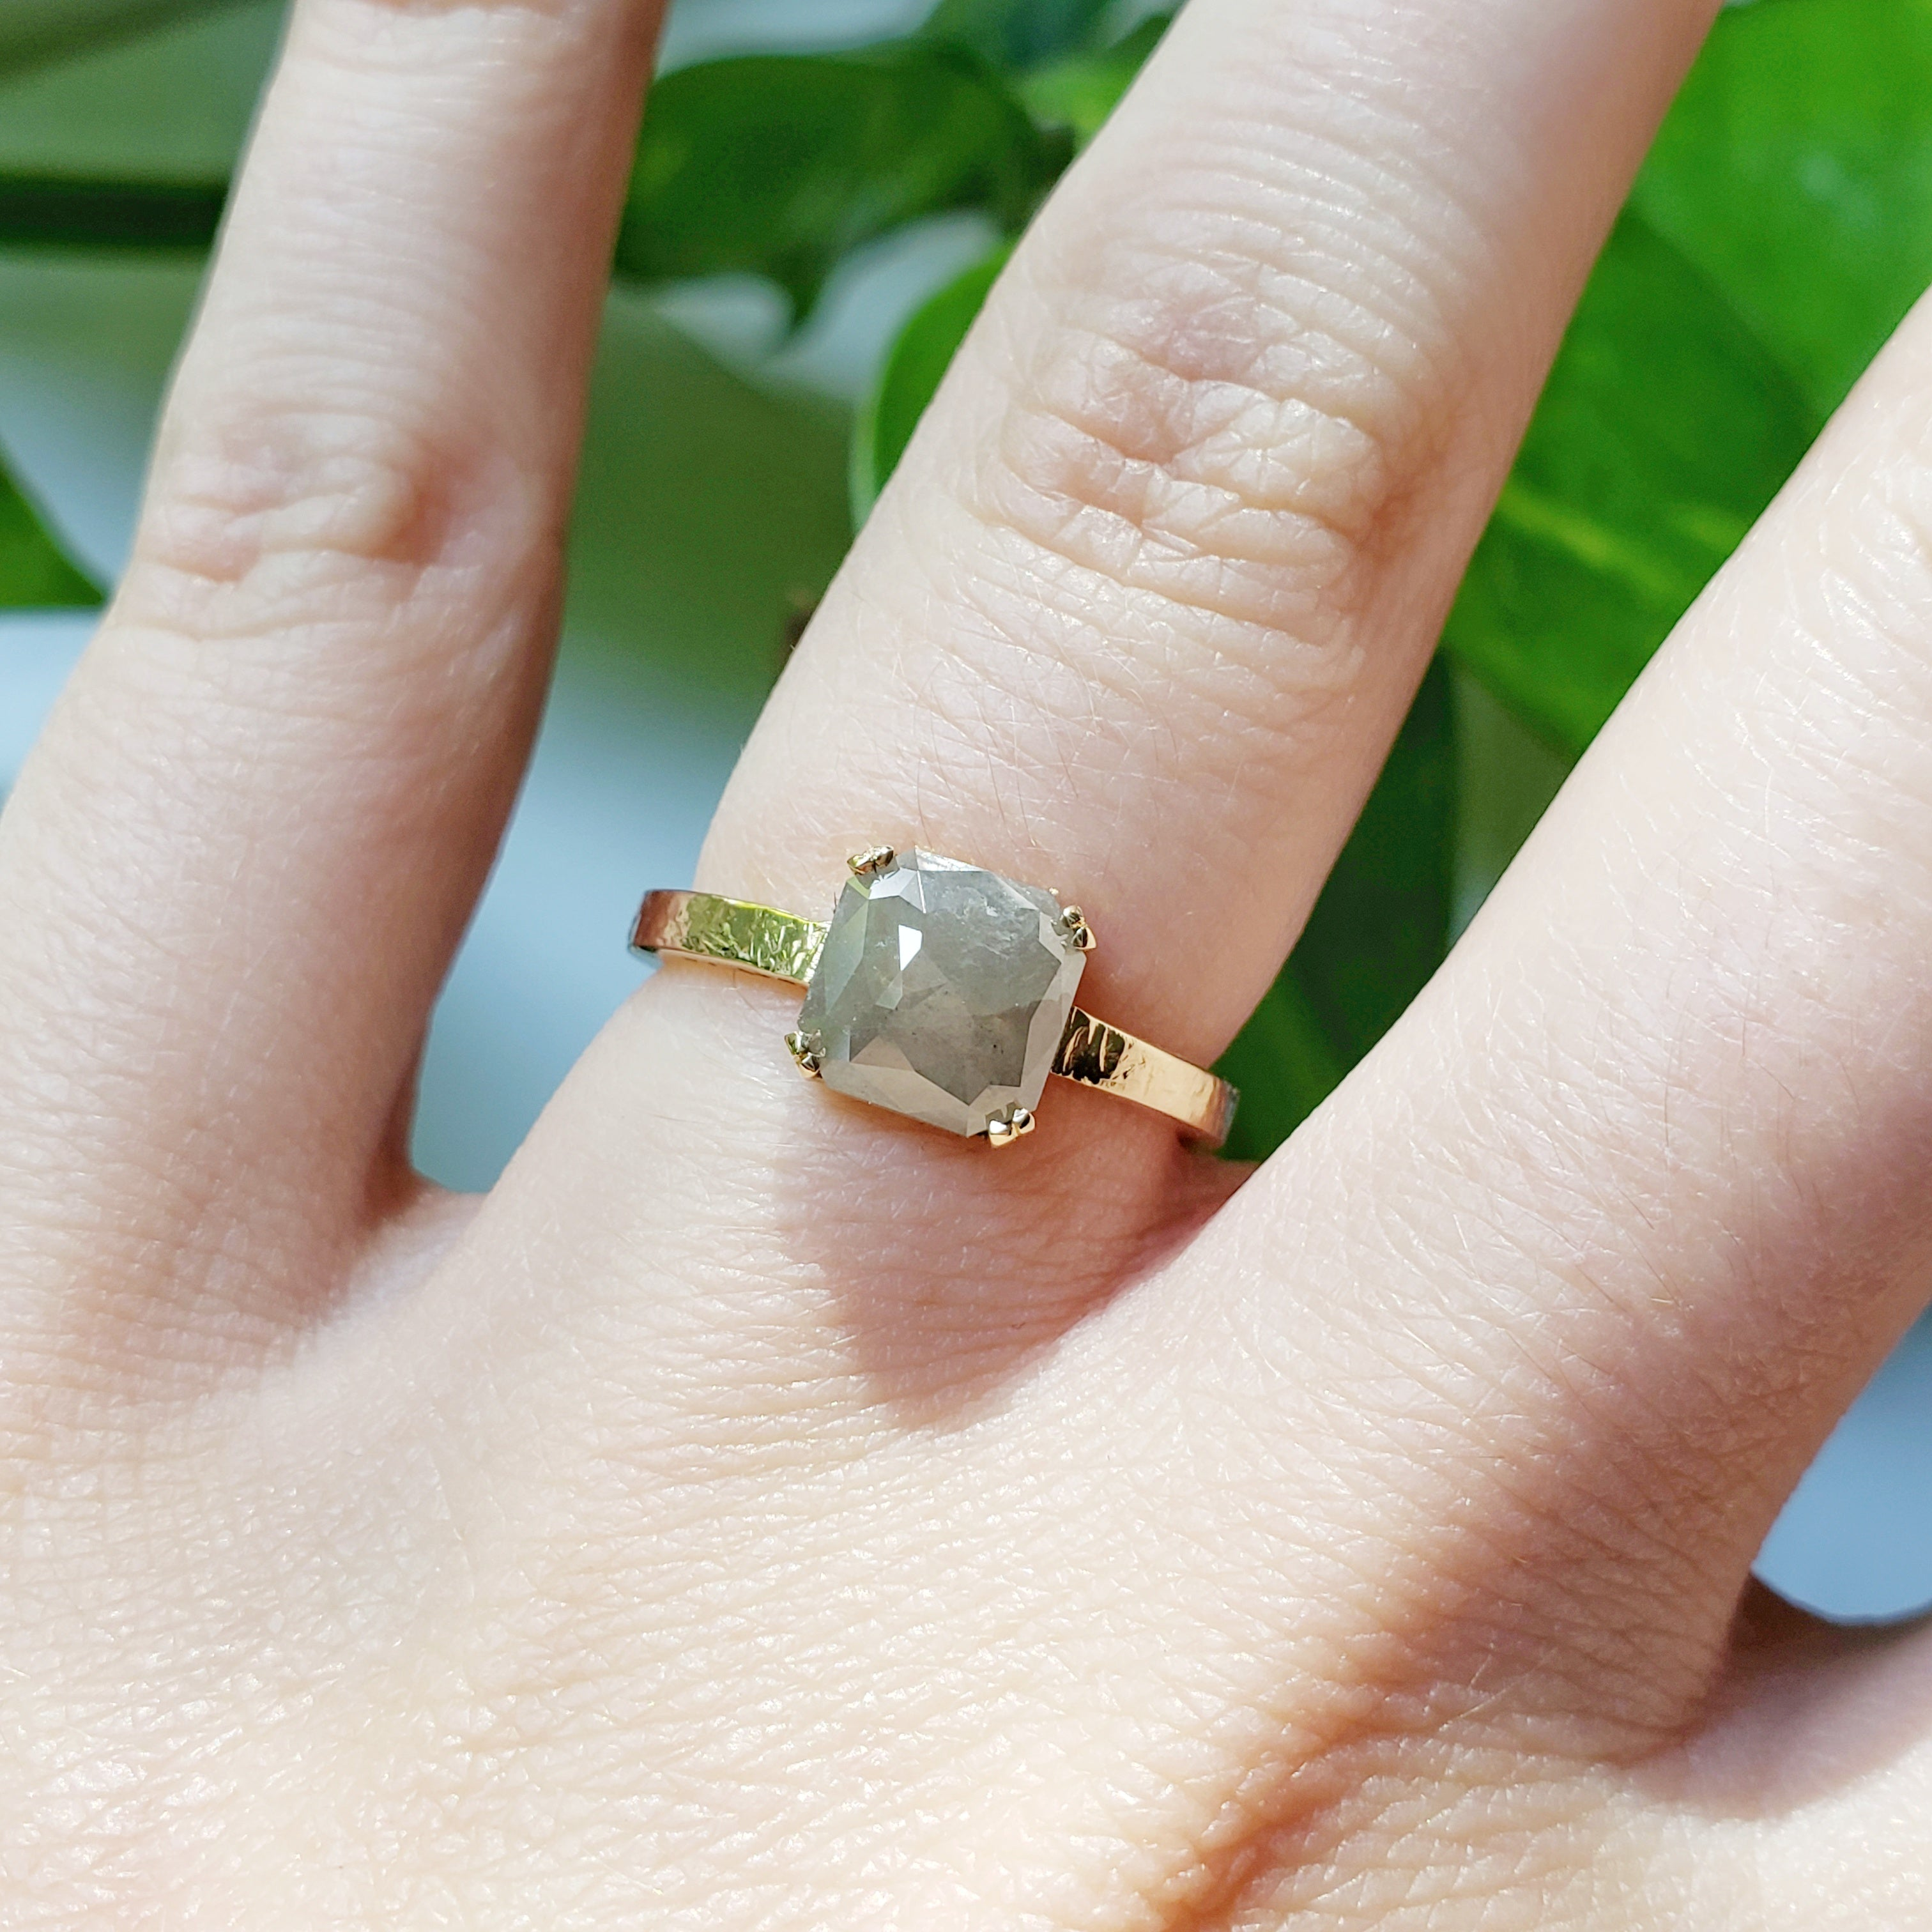 14kt yellow gold cinereal salt and pepper grey rose cut square diamond hammered texture handcrafted era design vancouver